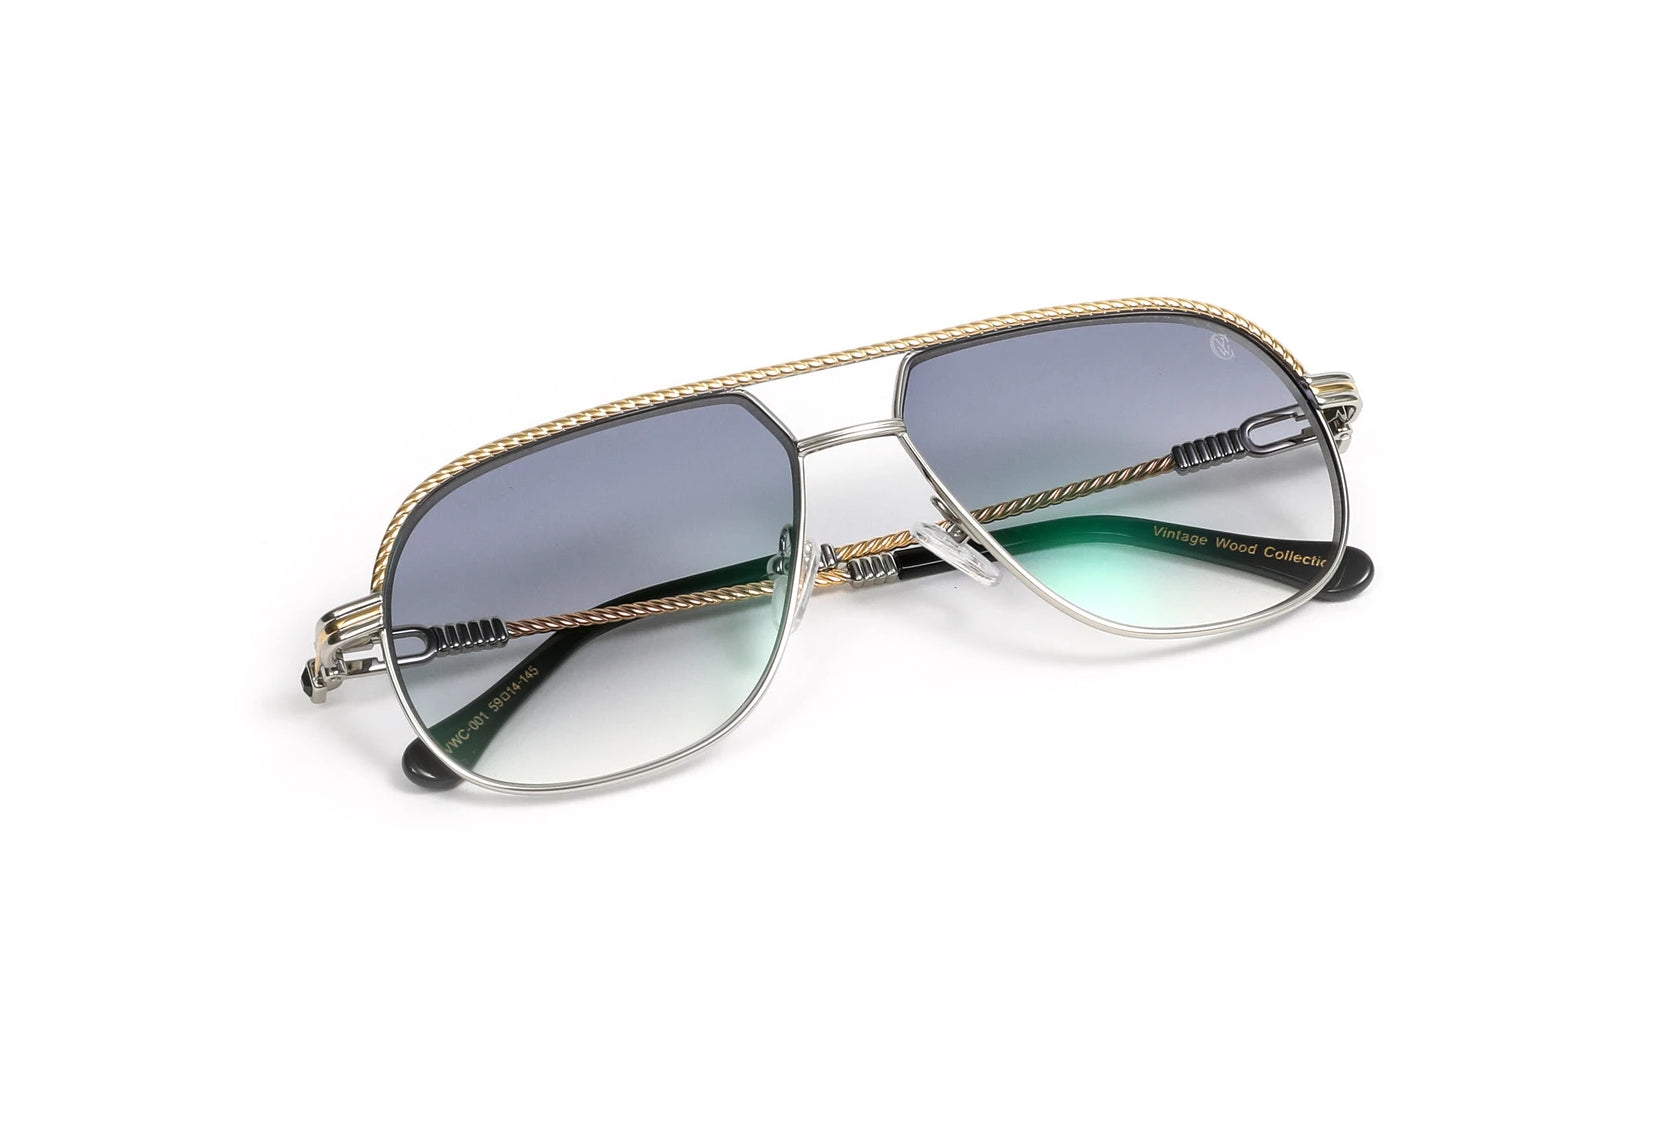 Gold 18k Plated and Silver Aviator Sunglasses, Gradient Grey Anti Reflective Lenses